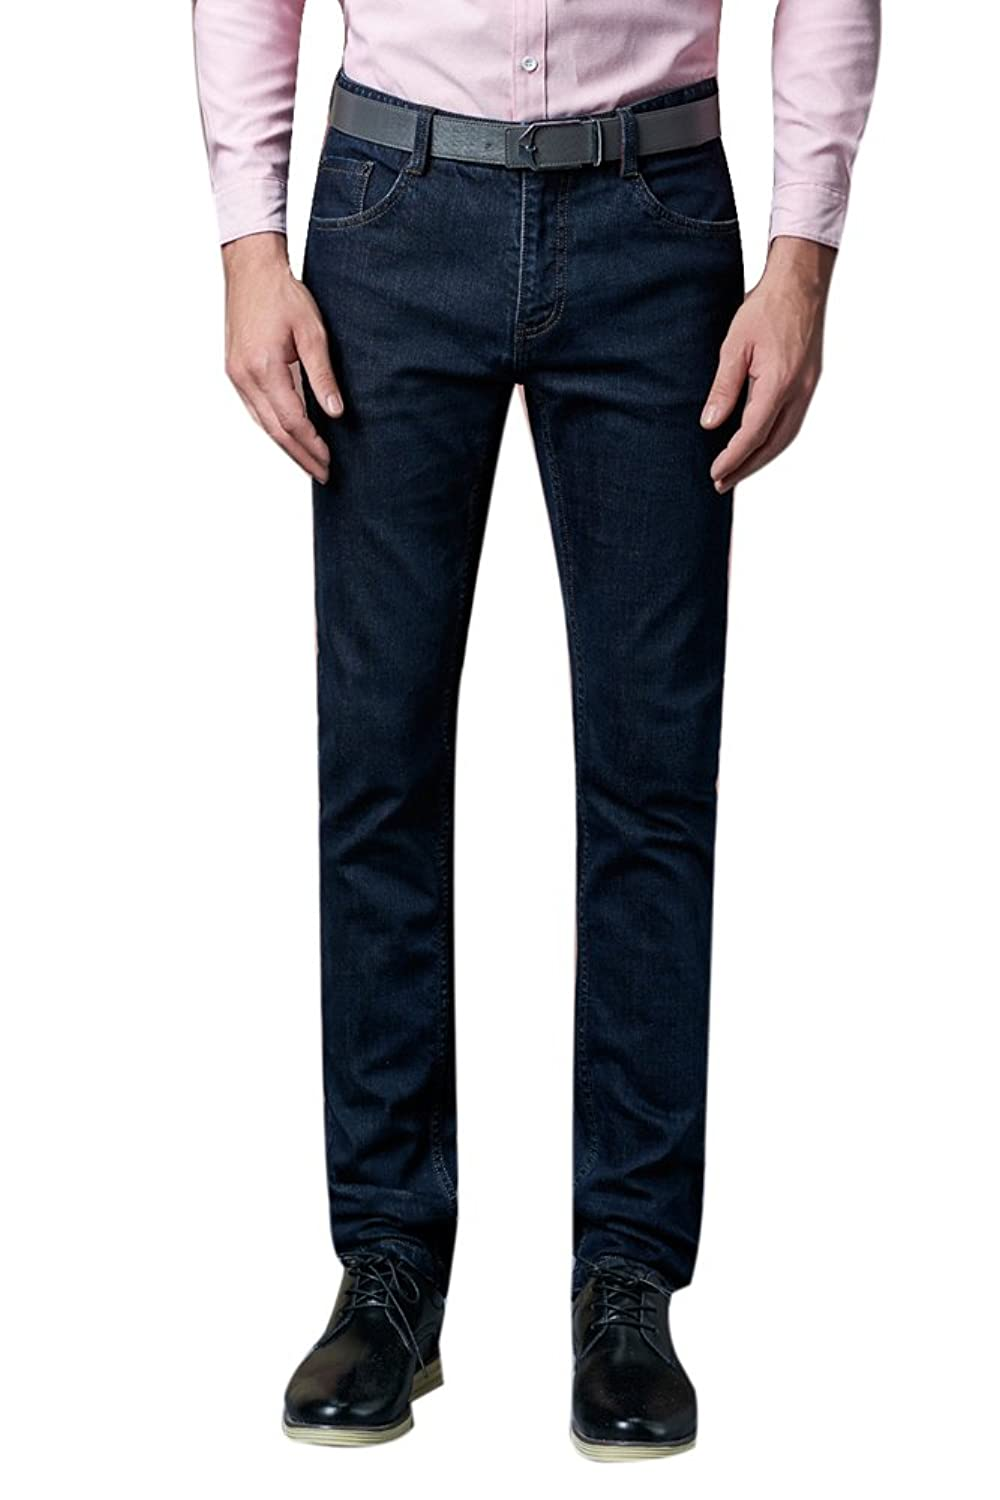 Chickle Men's Flat Front Pant Pocket Straight Fit Jeans